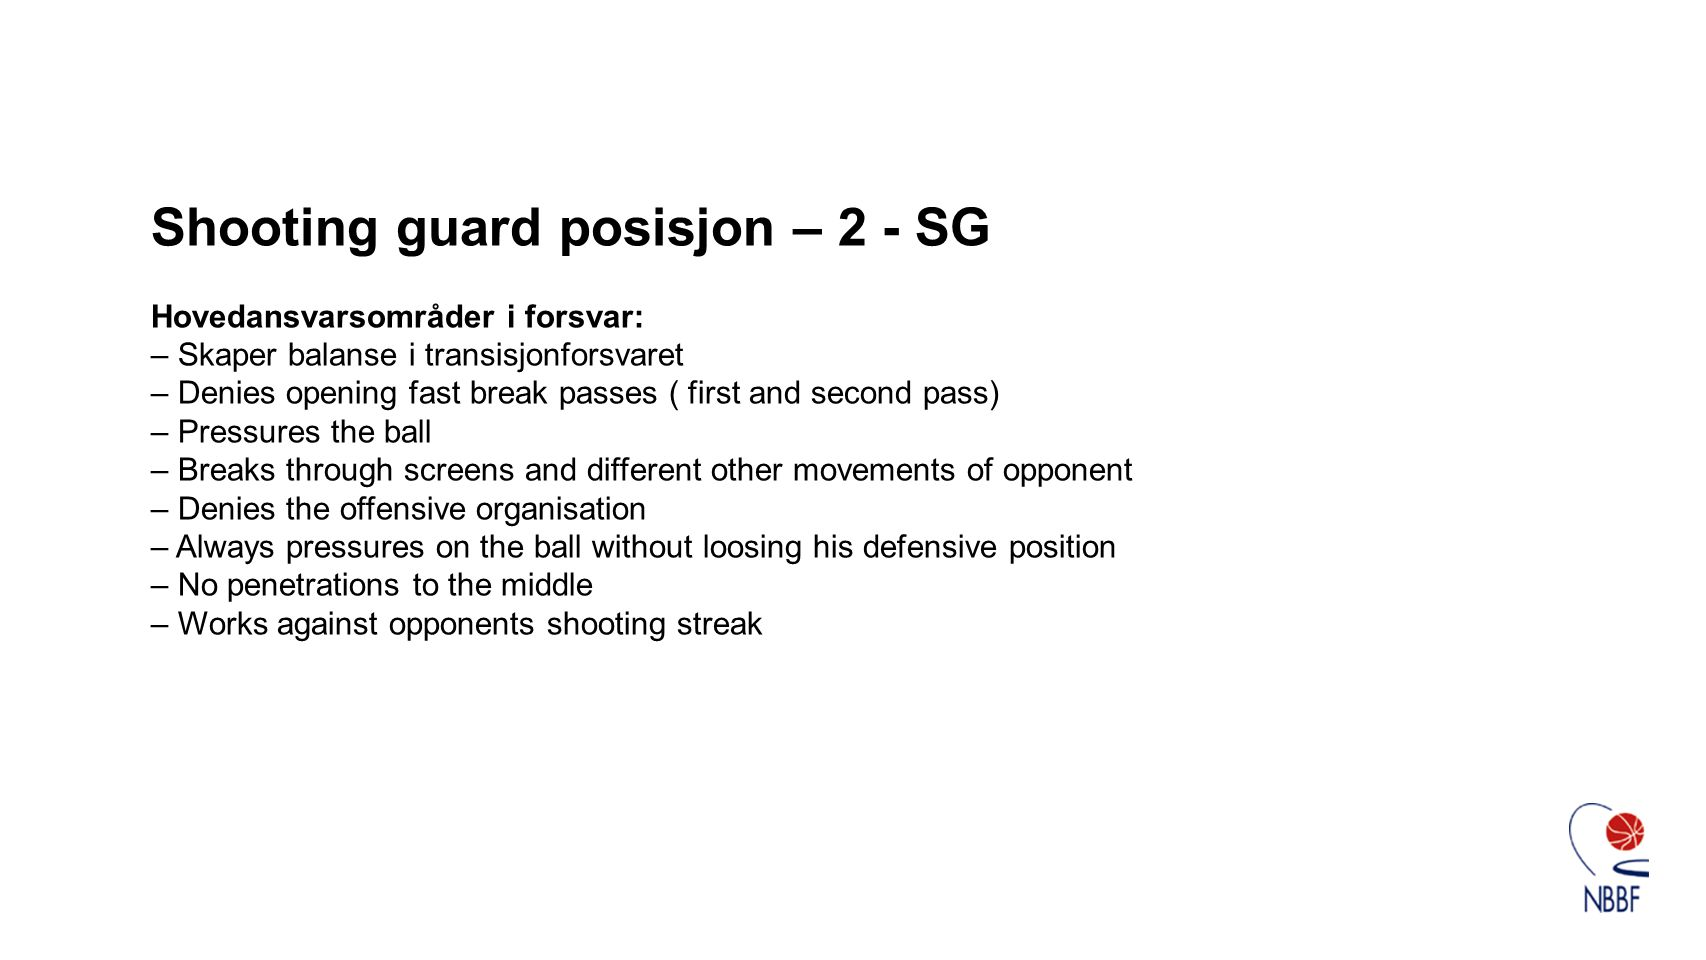 Shooting guard posisjon – 2 - SG Hovedansvarsområder i forsvar: – Skaper balanse i transisjonforsvaret – Denies opening fast break passes ( first and second pass) – Pressures the ball – Breaks through screens and different other movements of opponent – Denies the offensive organisation – Always pressures on the ball without loosing his defensive position – No penetrations to the middle – Works against opponents shooting streak